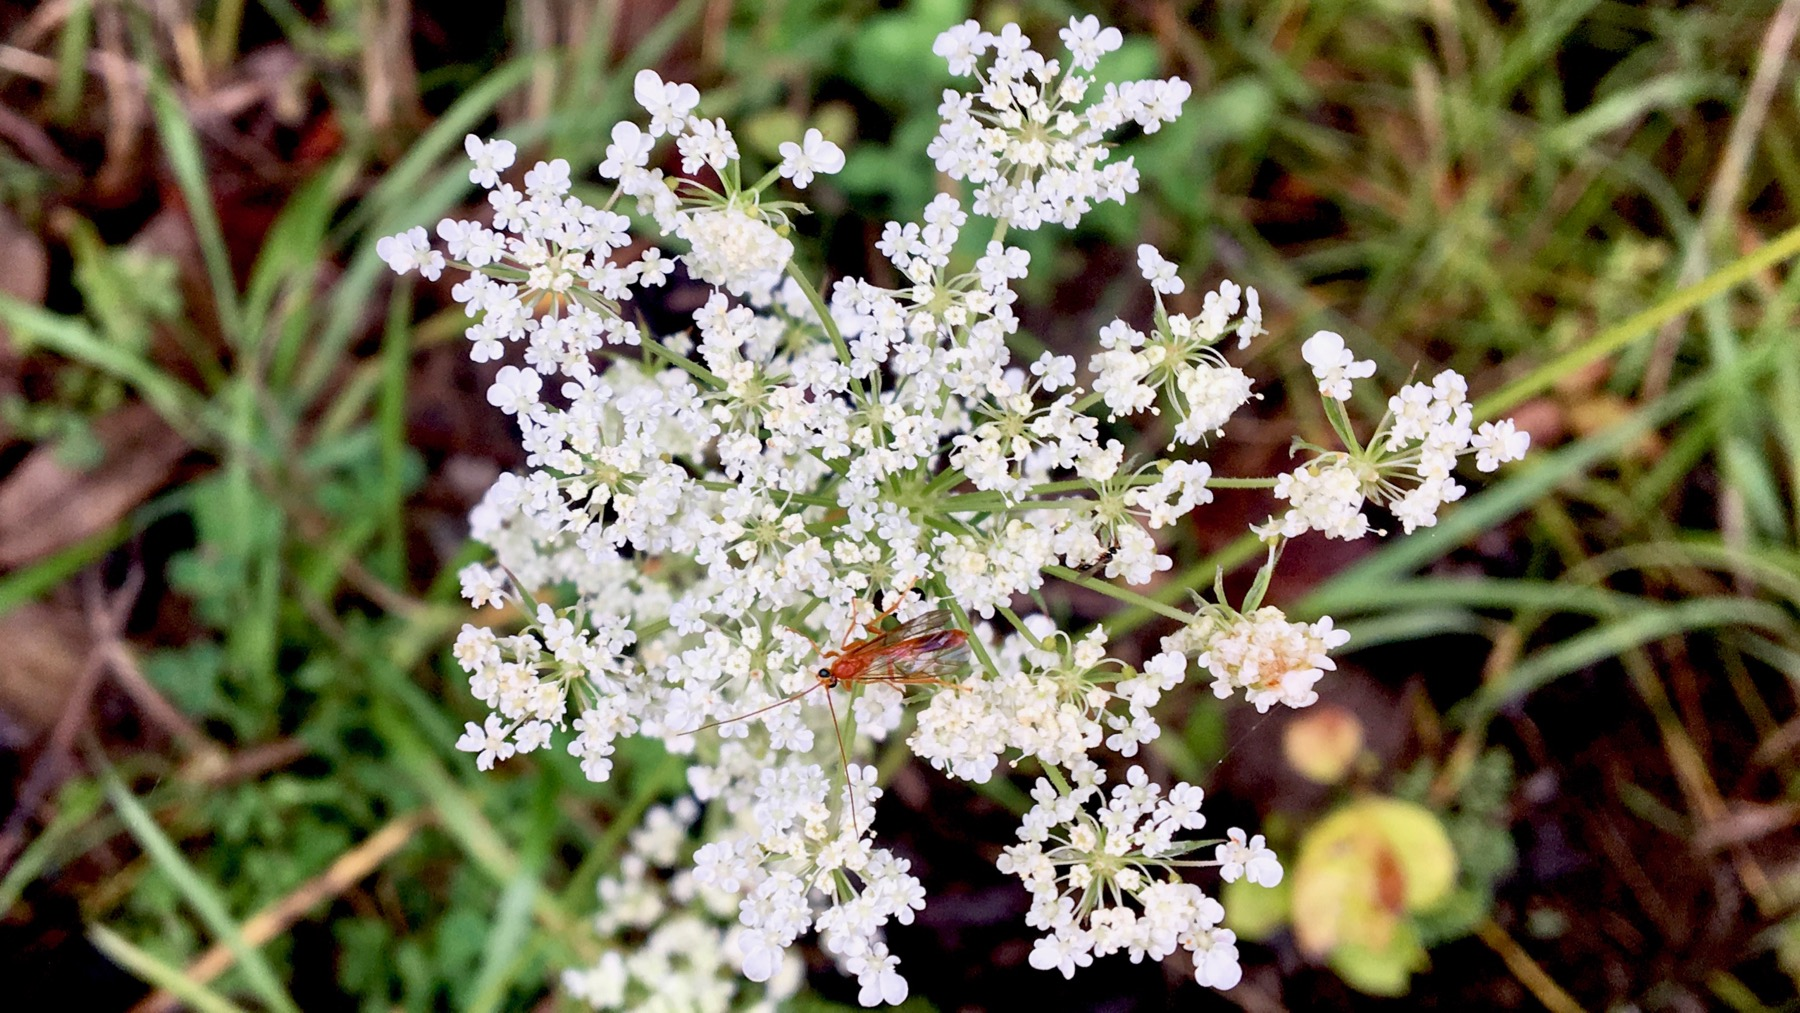 Queen annes lace n insect